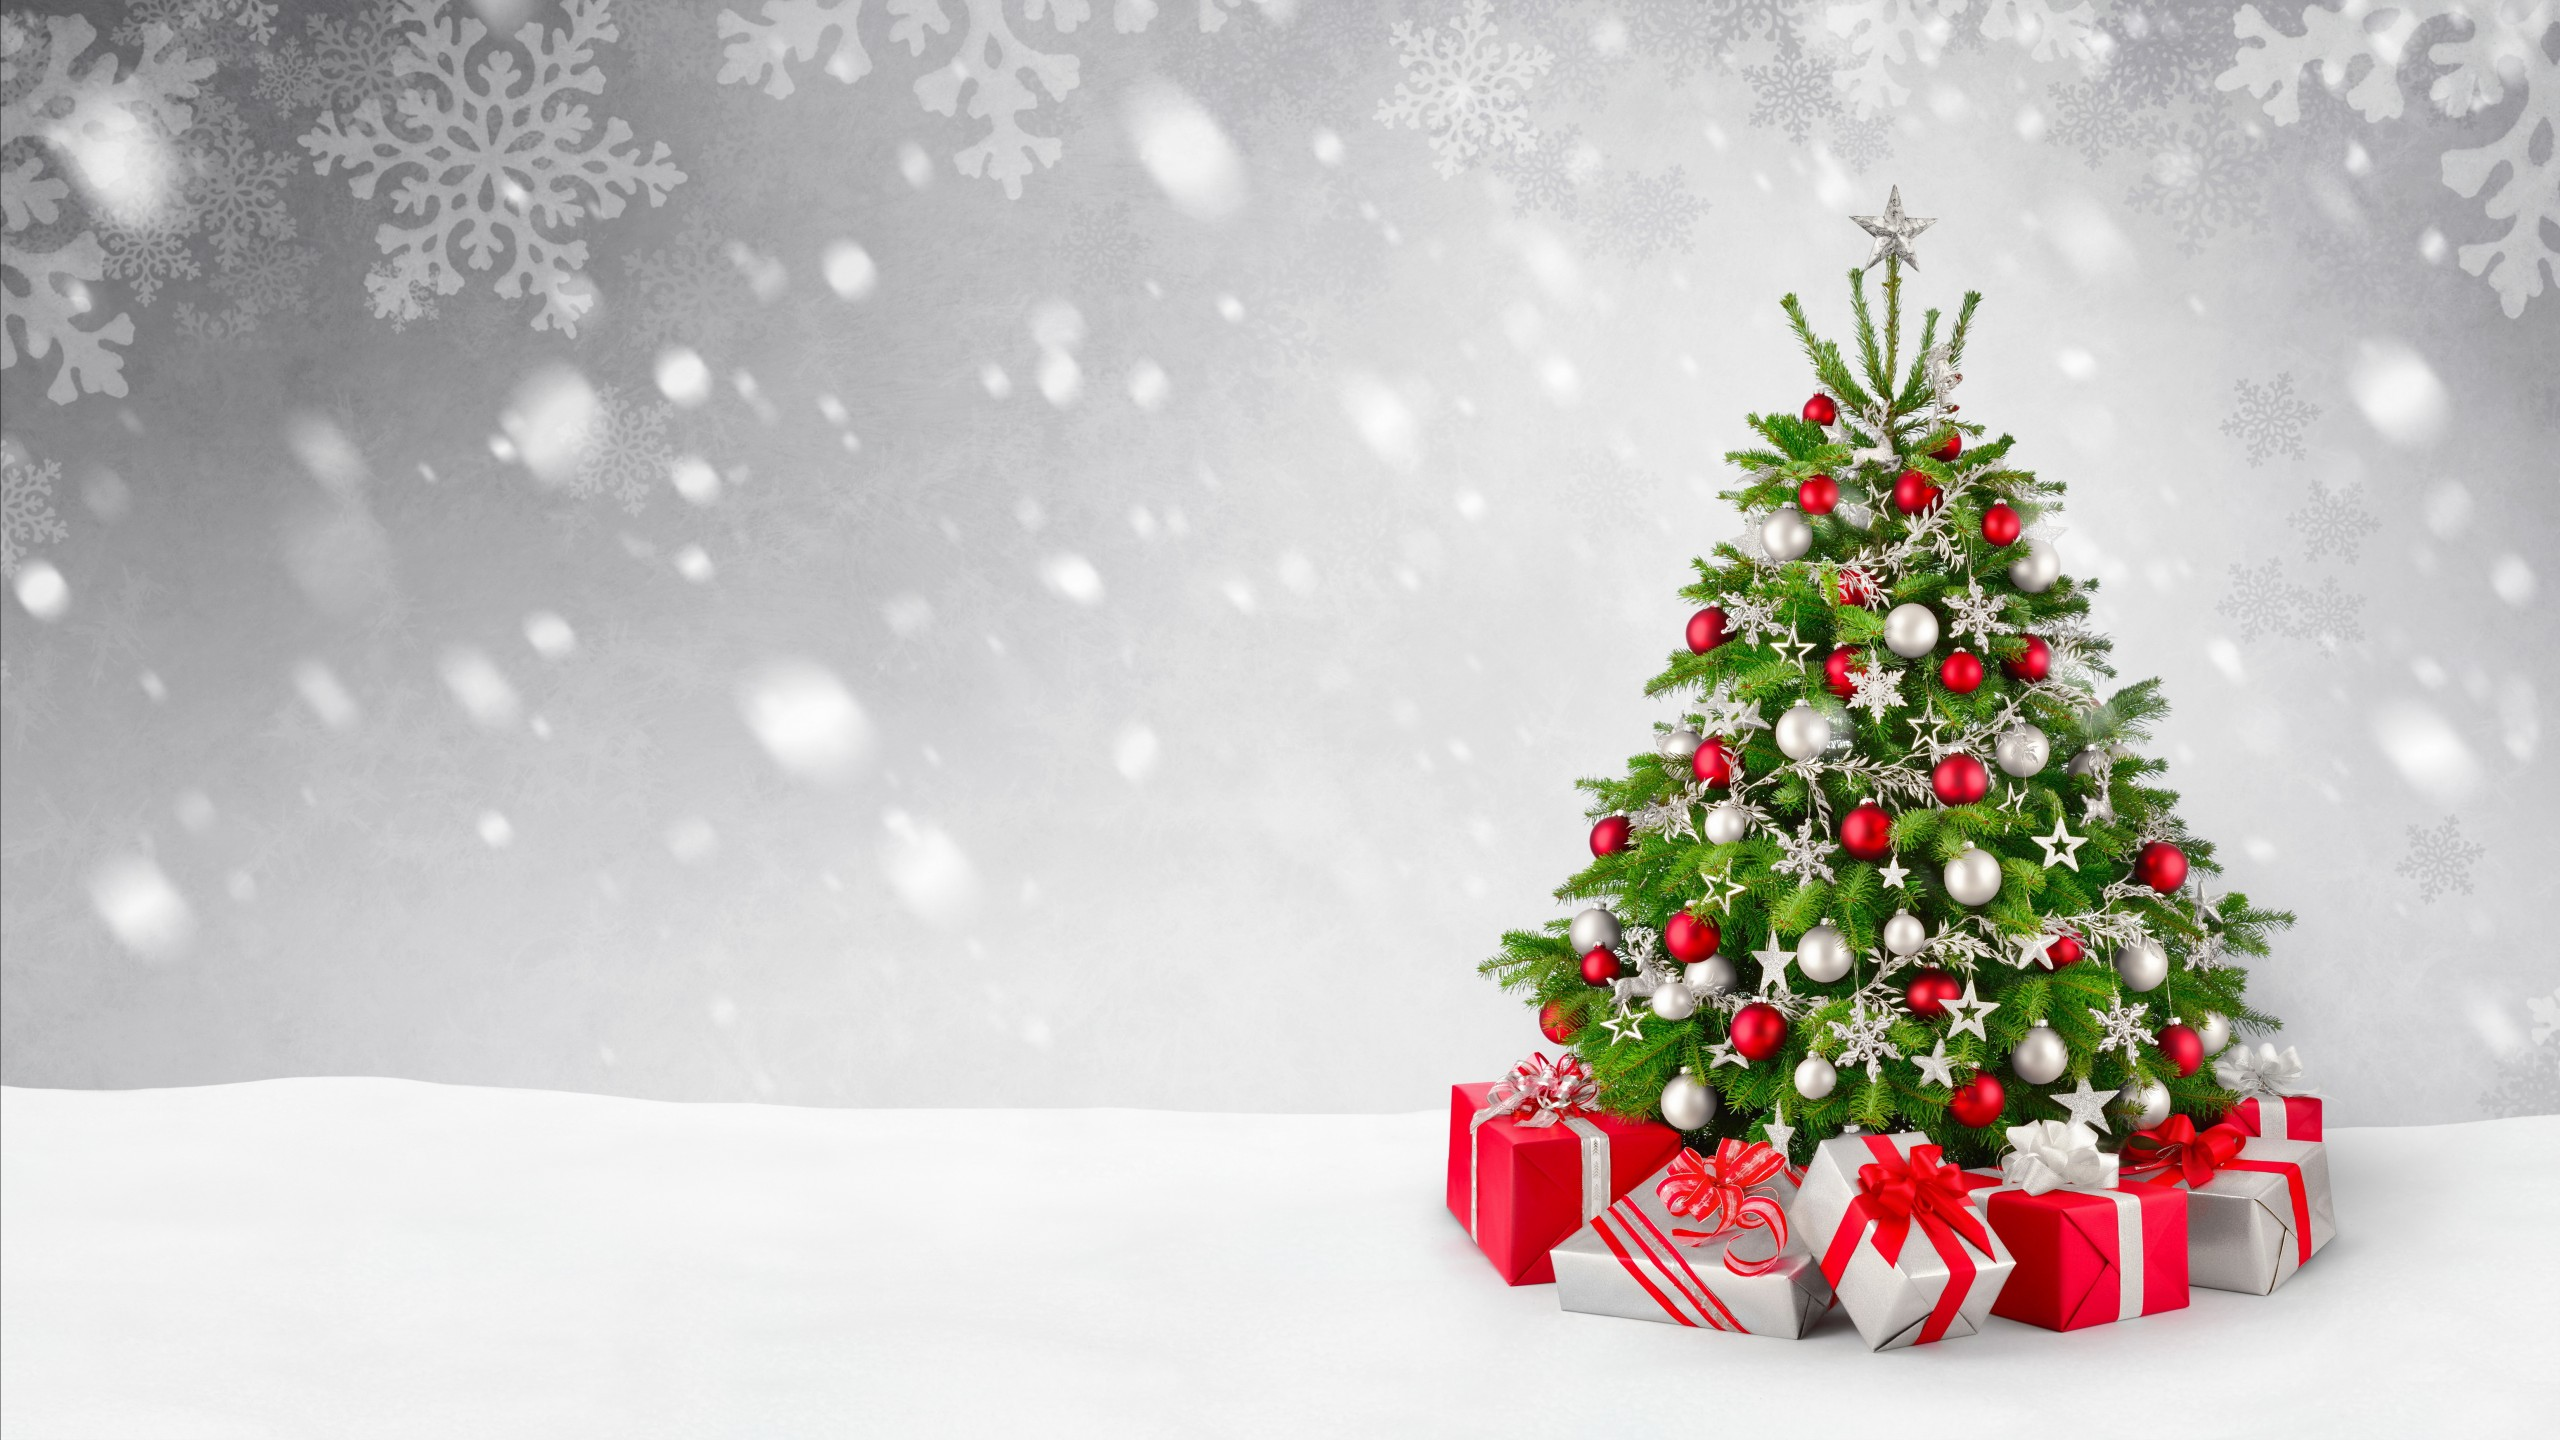 Christmas Tree Wallpaper 1440p